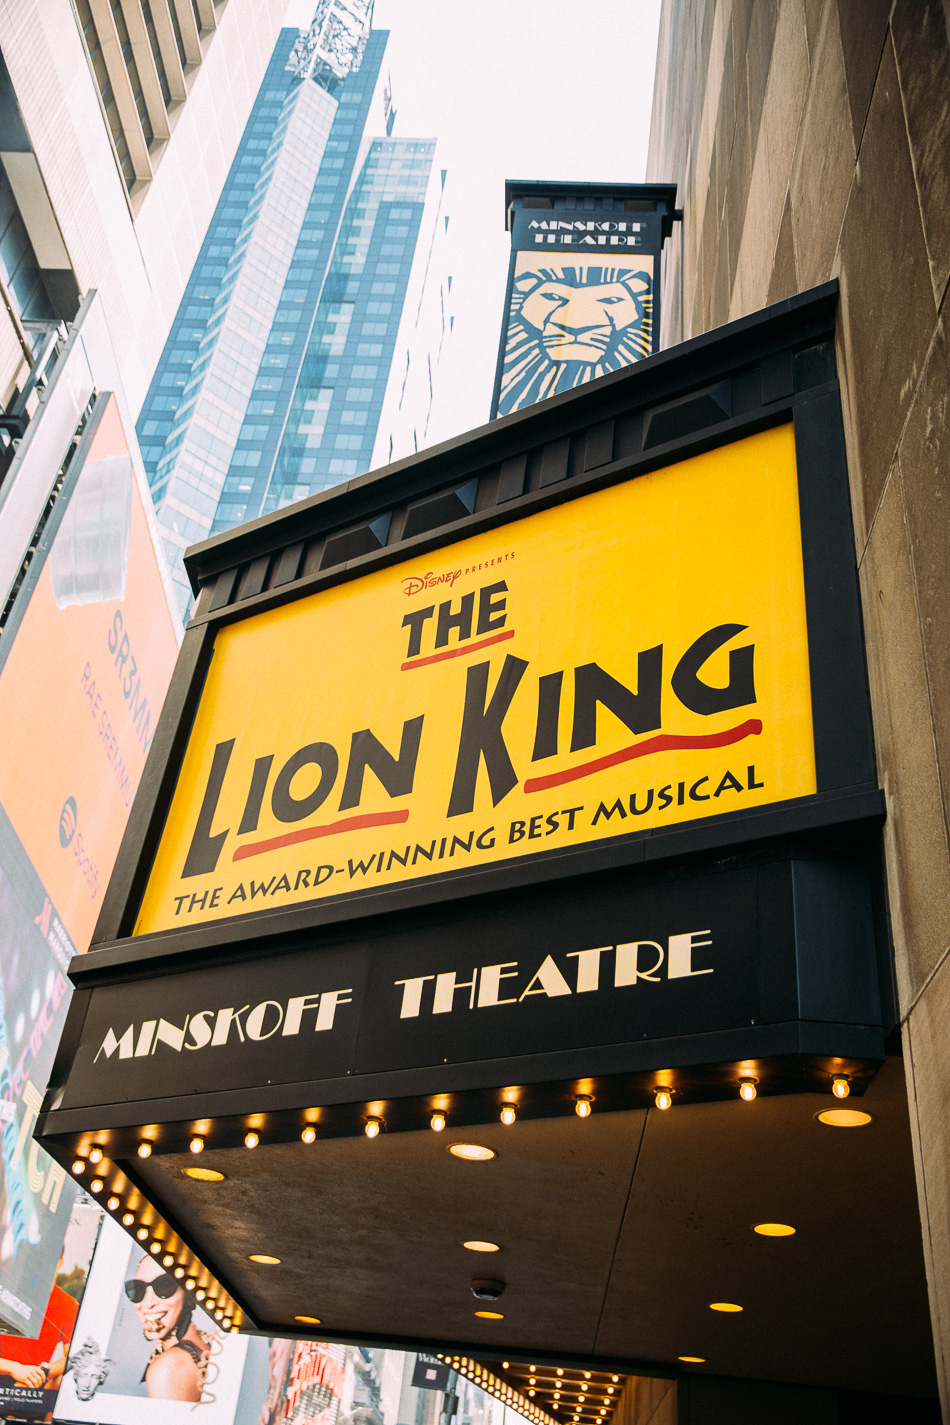 NYC & Lion King on Broadway